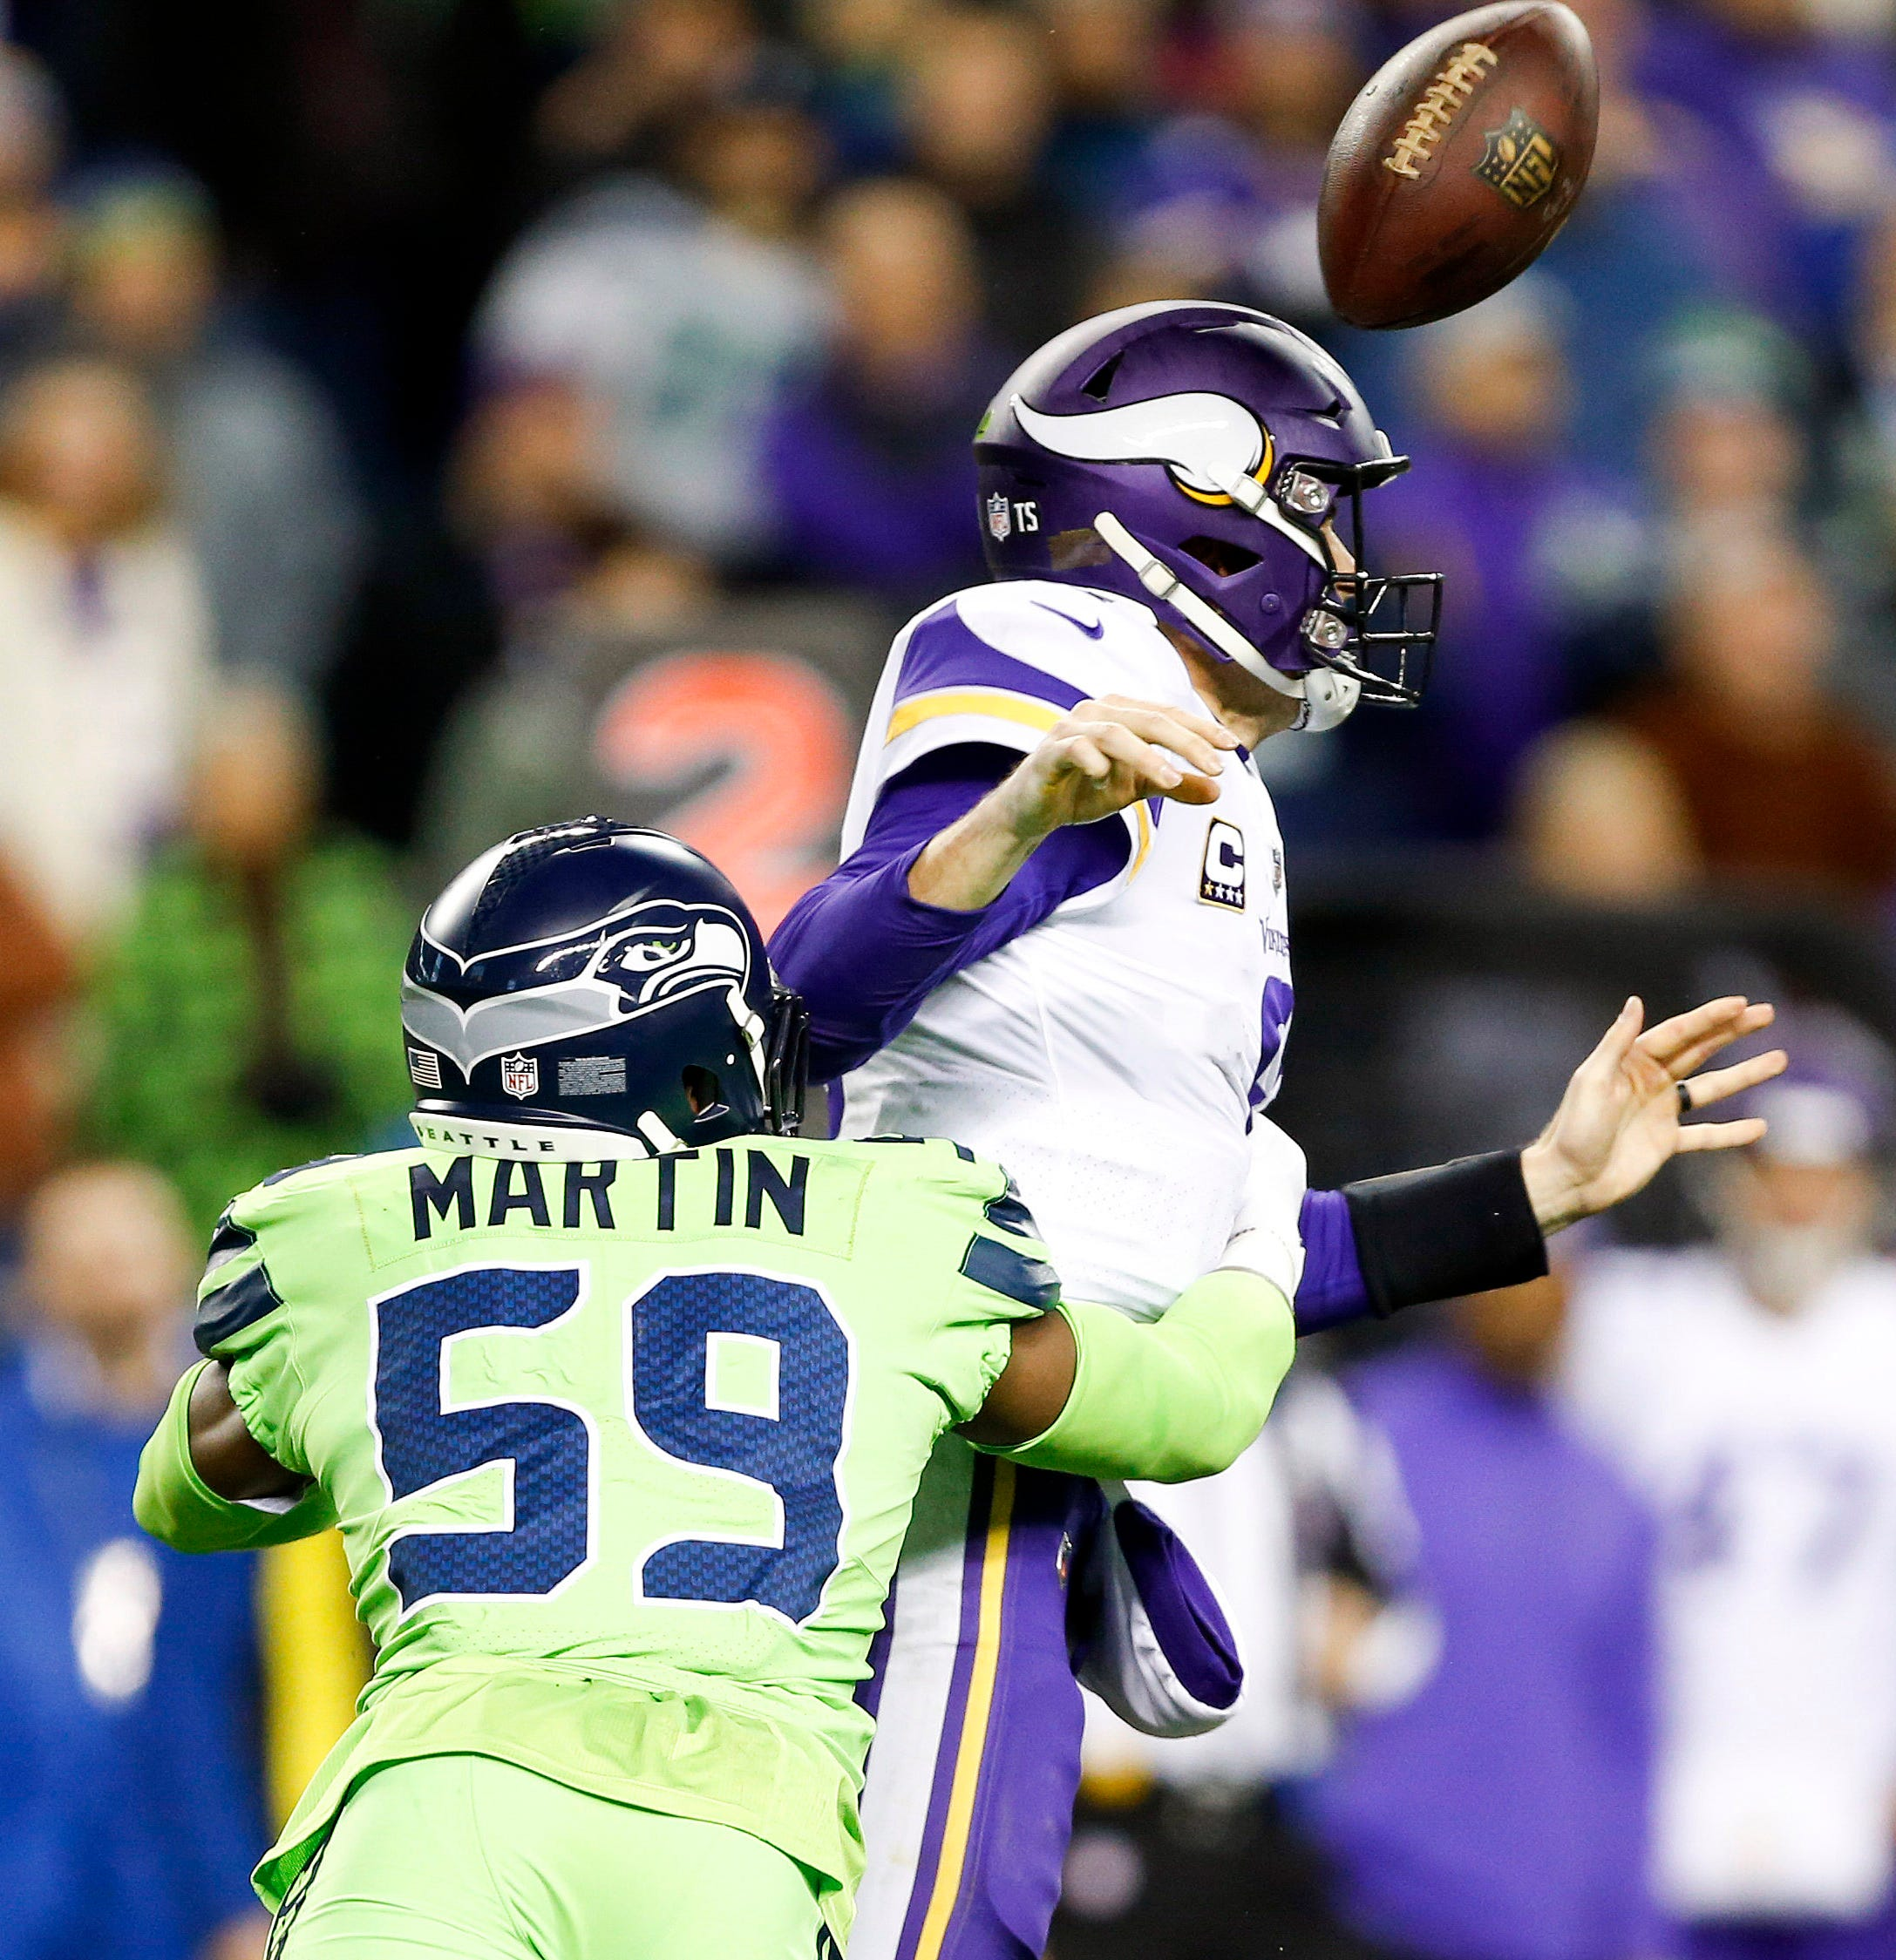 Seattle Seahawks linebacker Jake Martin forces a fumble by Minnesota Vikings quarterback Kirk Cousins during the fourth quarter at CenturyLink Field. The fumble was returned for a touchdown.